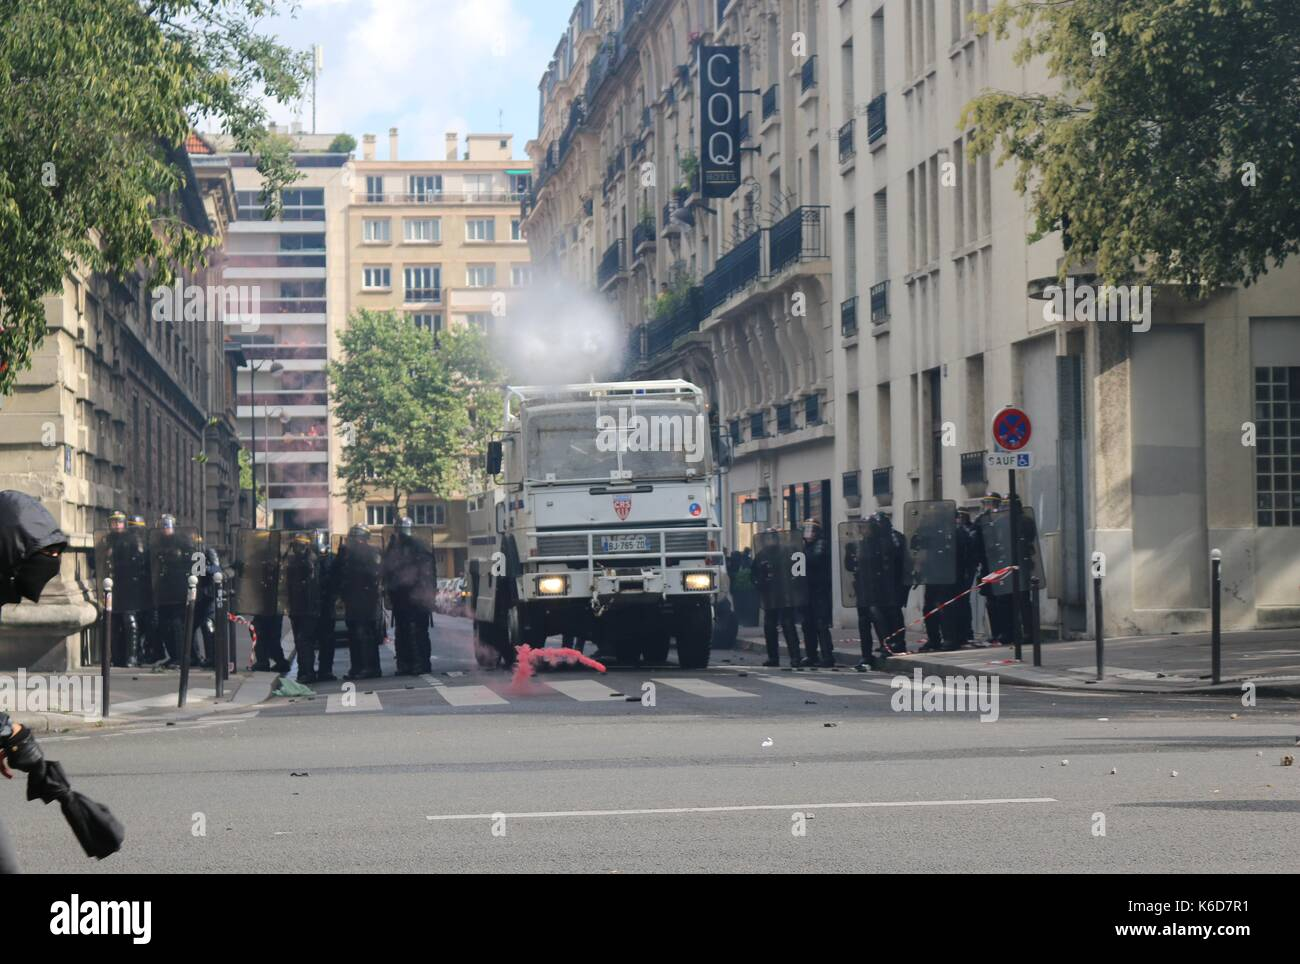 Paris, France. 12th Sep, 2017. Water cannon is deployed after clashes in Paris Credit: Conall Kearney/Alamy Live News - Stock Image